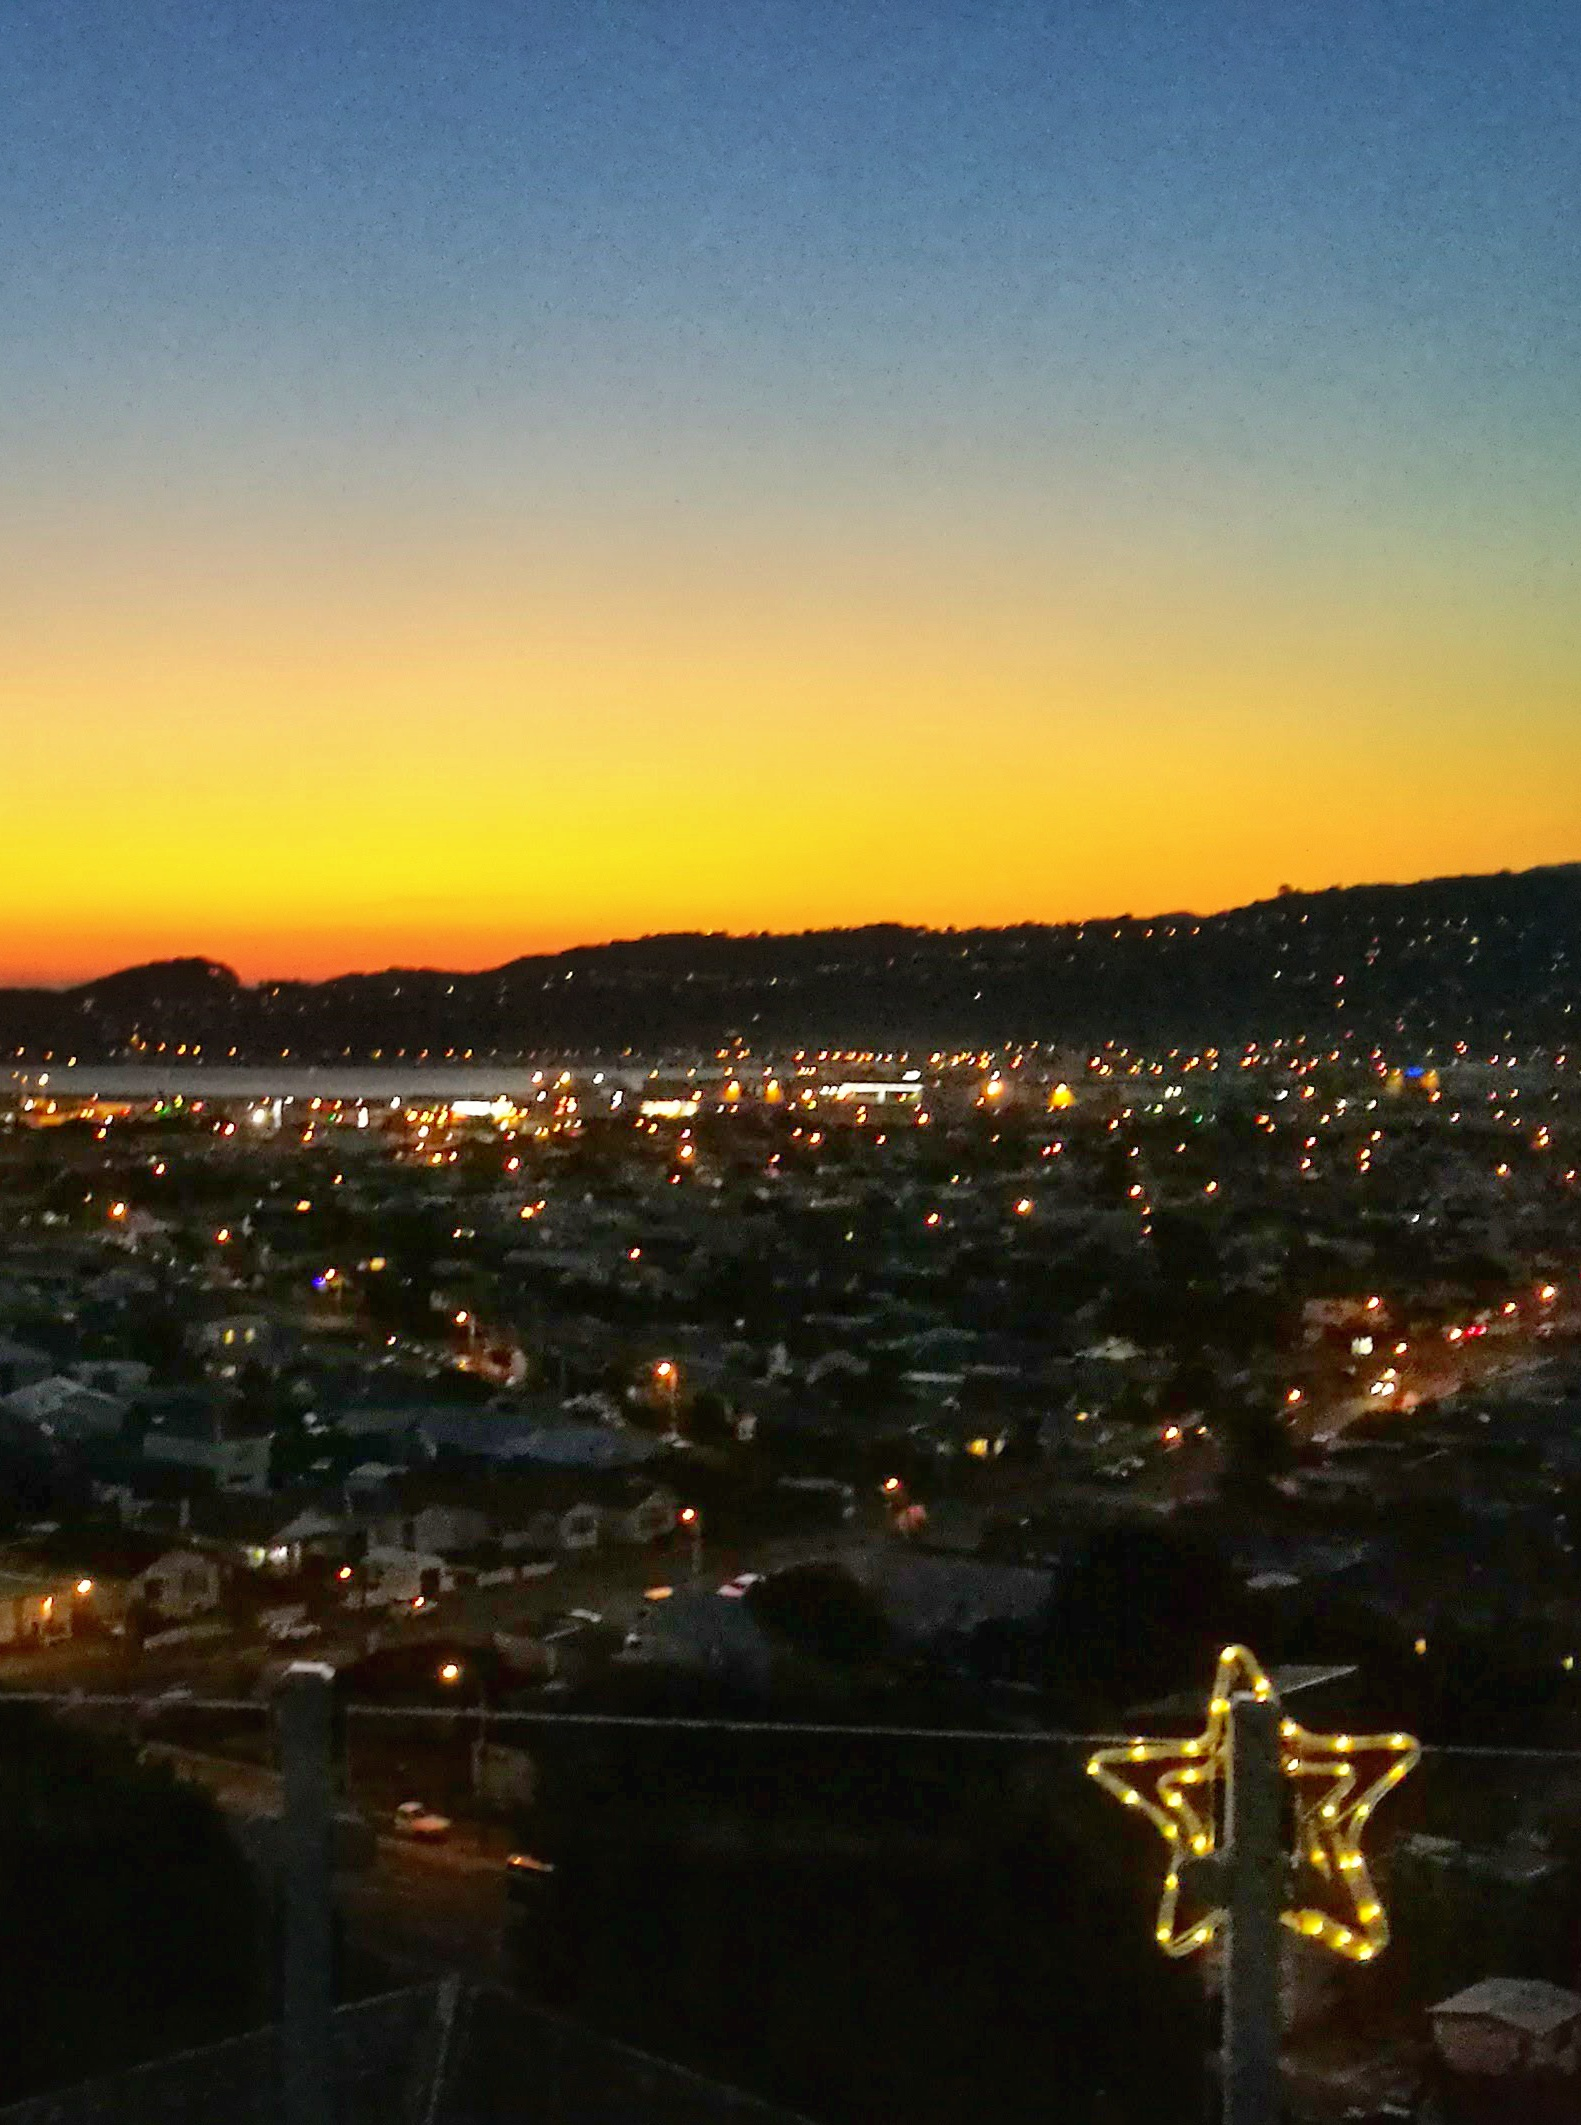 Sunset and Christmas star looking over Strathmore Park